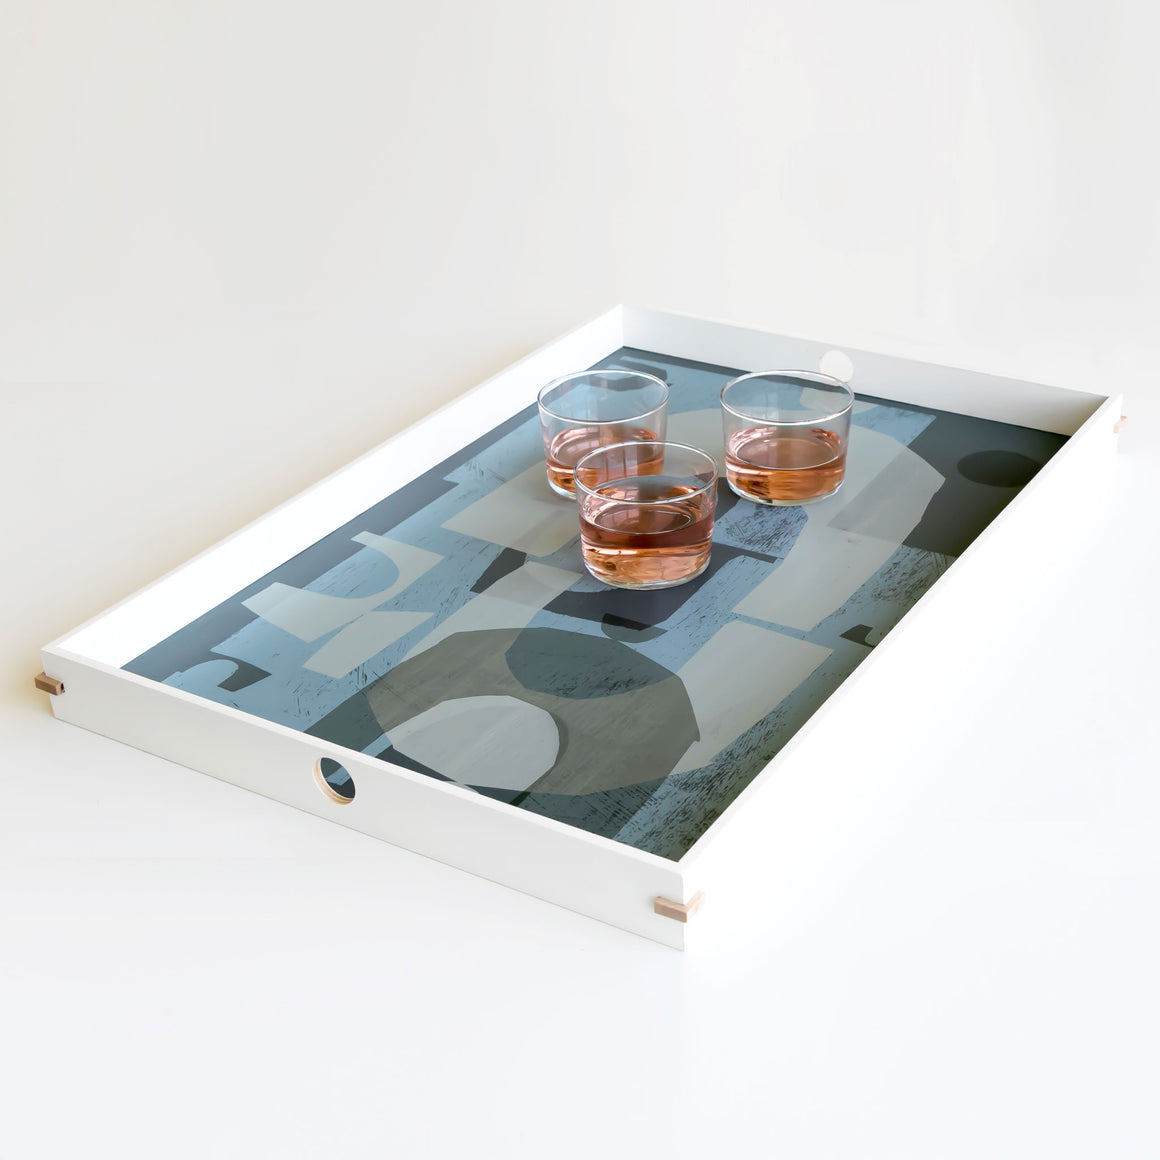 Tray, end table, coffee tray, side table